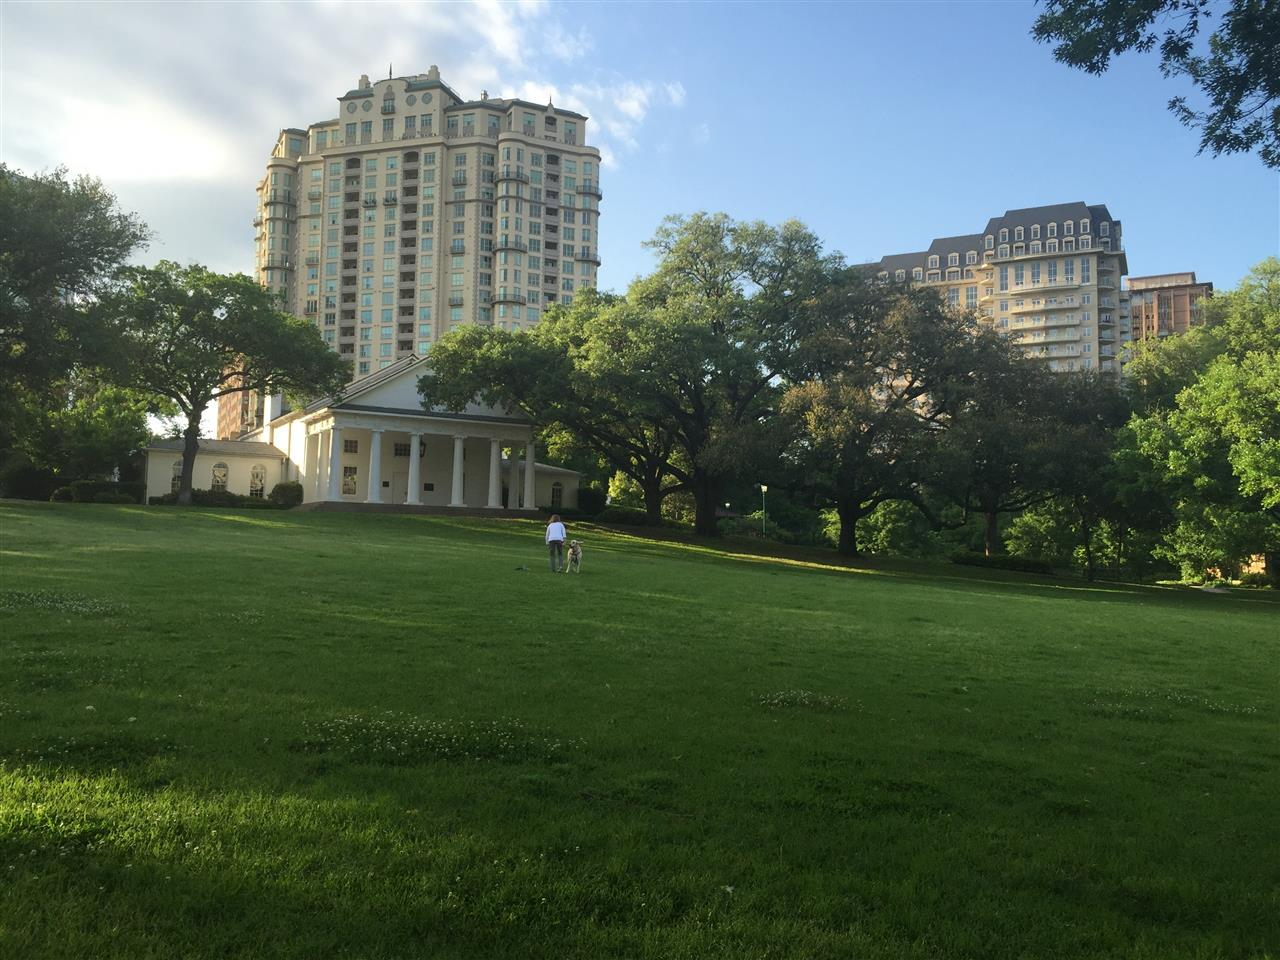 #Turtle Creek, #Lee Park, #Arlington Hall with highrises in the background, #Dallas, #Texas